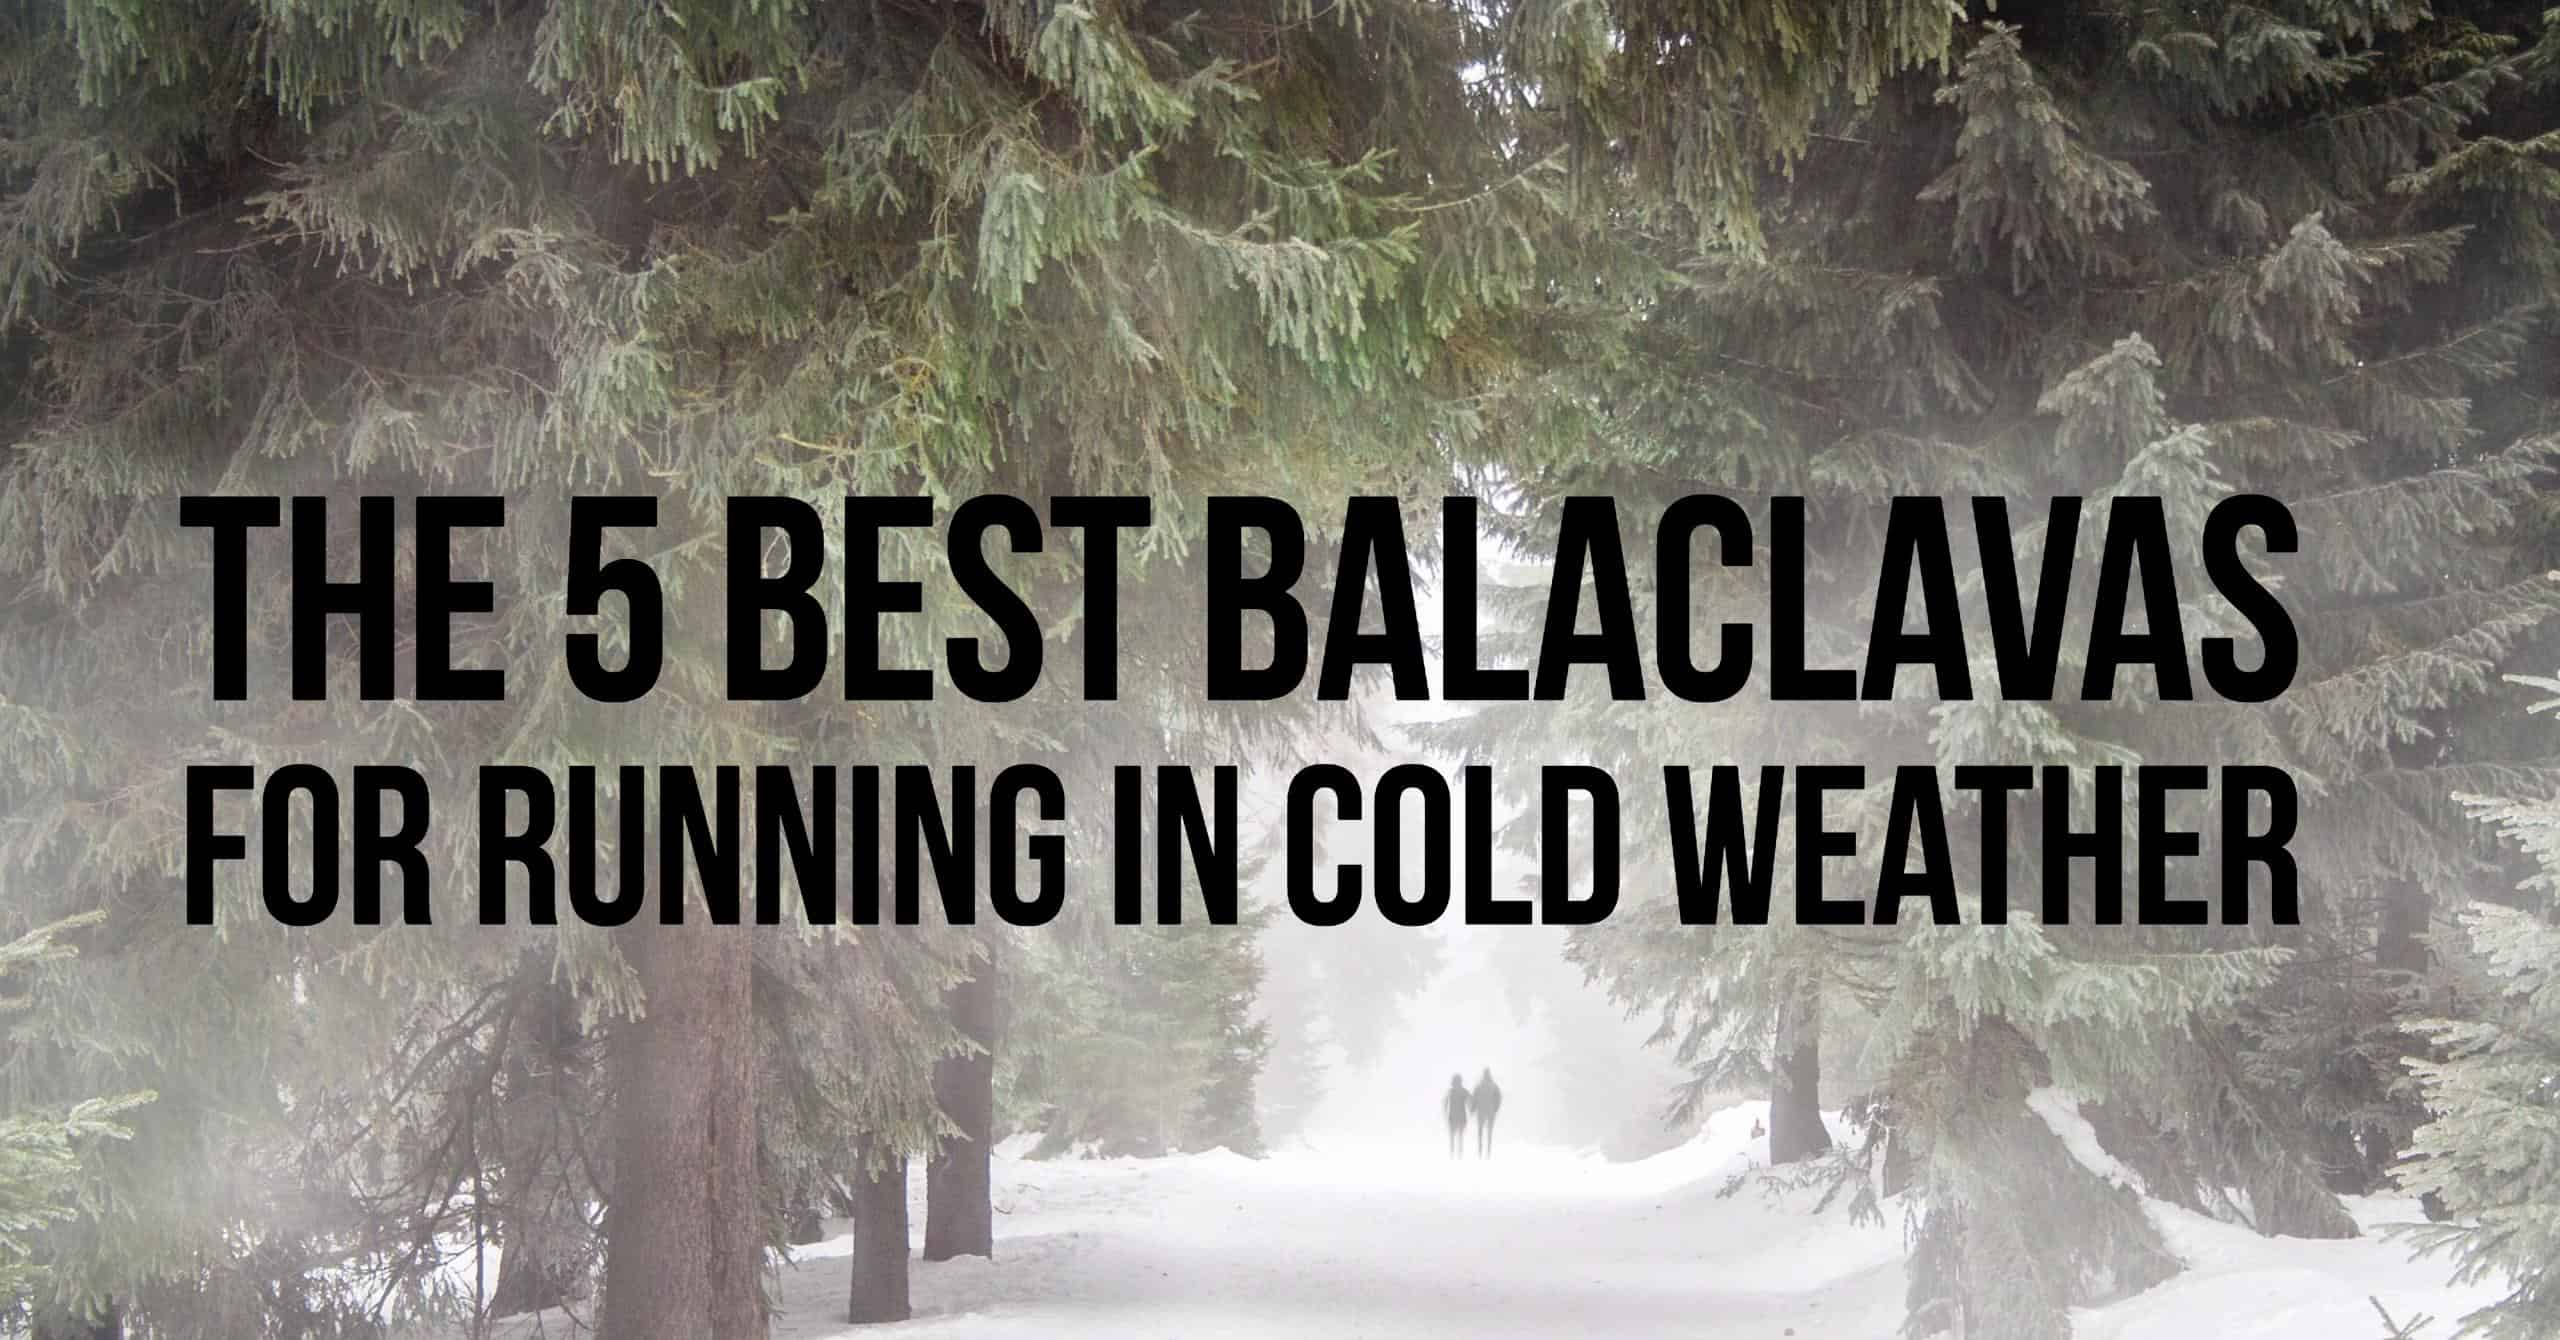 During the cold season, one of the things I value most is my running gear. To be precise, my balaclava is supposedly my best gear during winter, and I have literally worn it every single day throughout this freezing period. So what is this special gear, and why do you need one? We break down the benefits and review the 5 best balaclava for running in cold weather